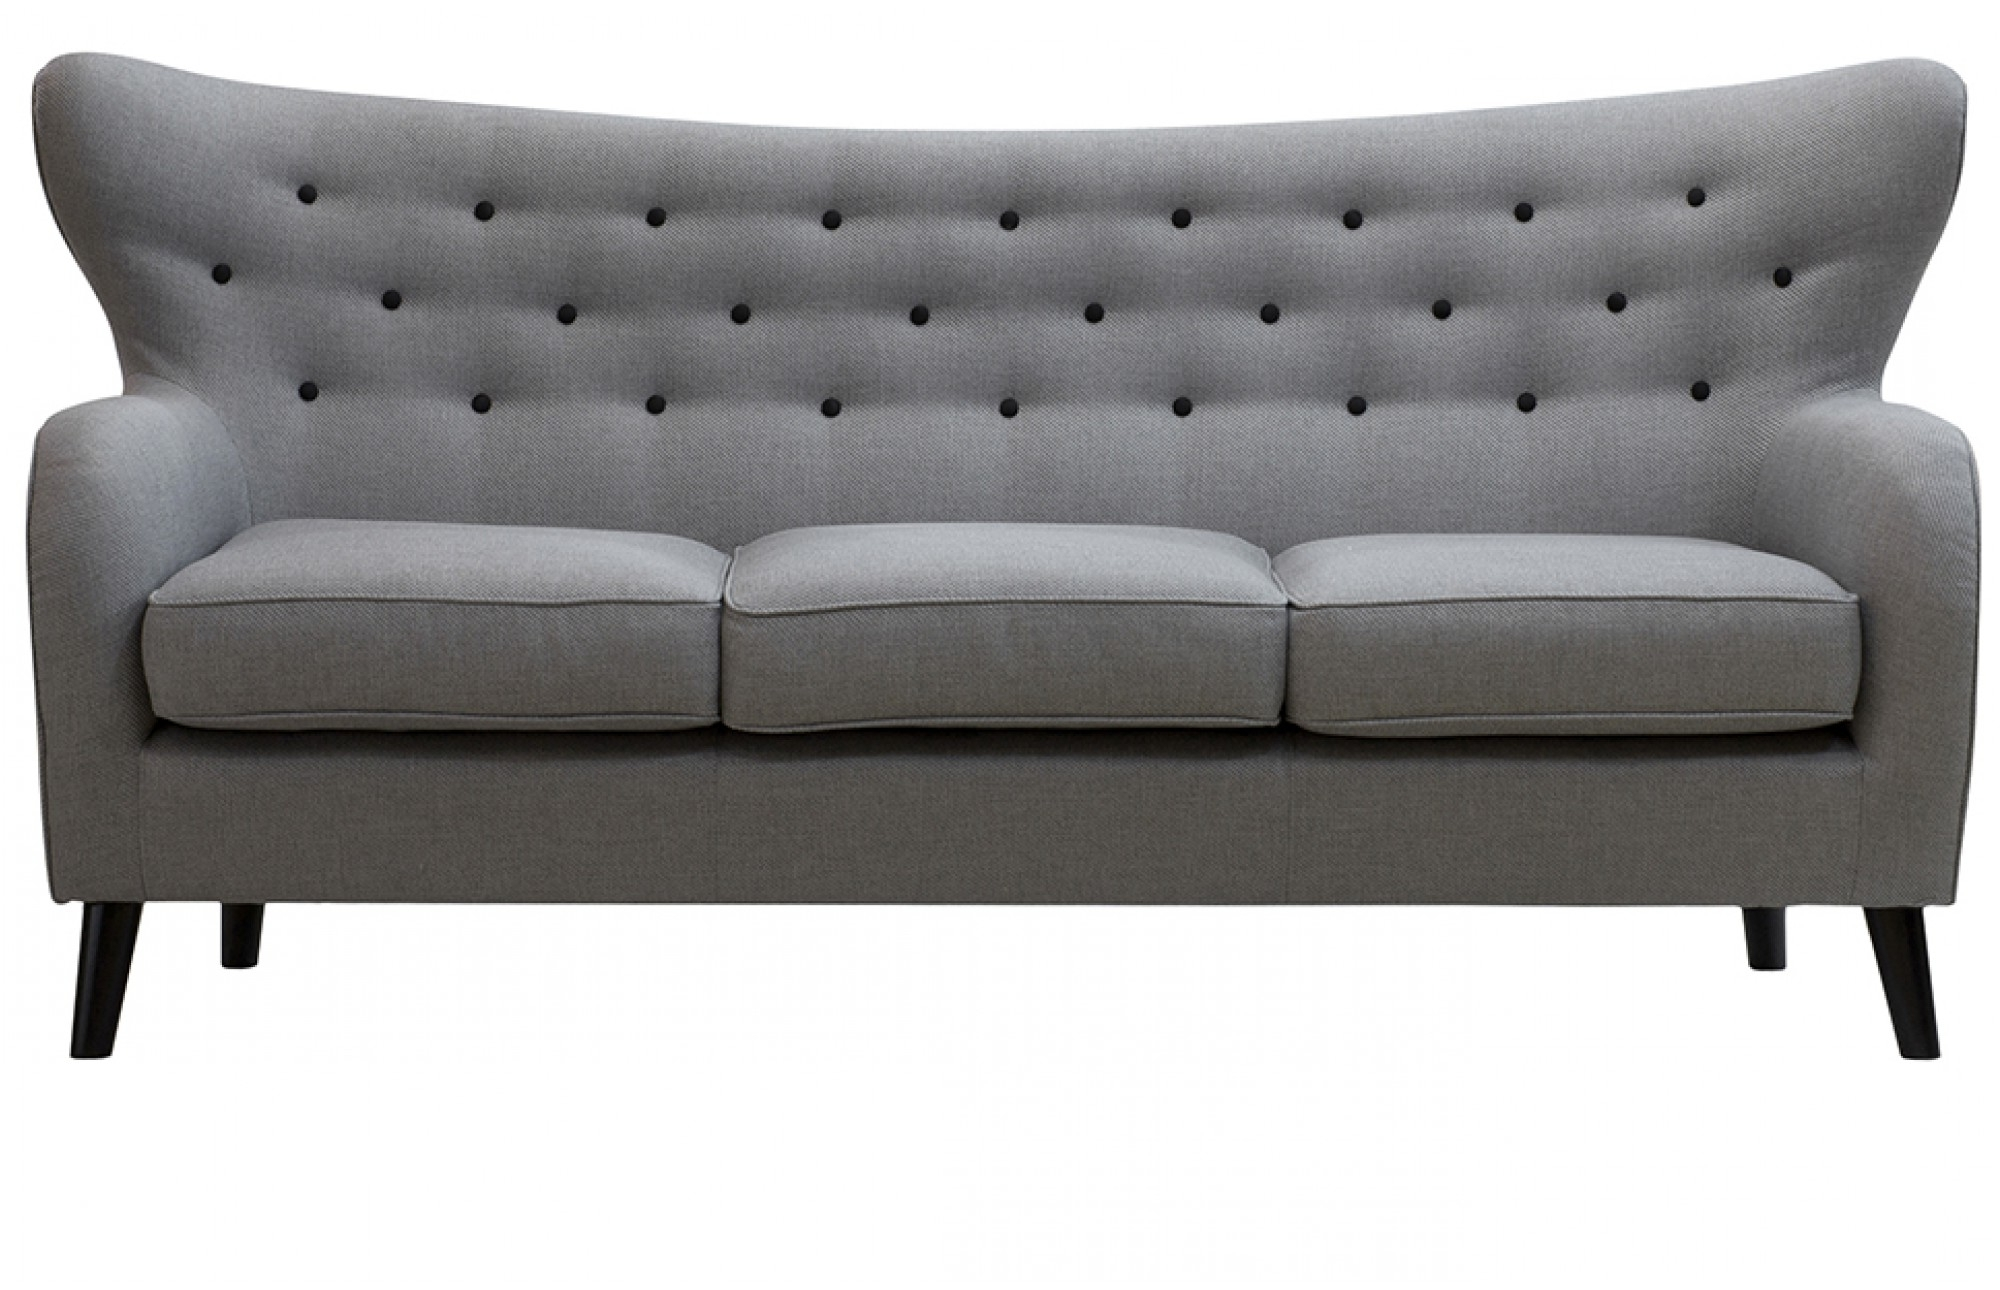 Fashionable Modern 3 Seater Sofas Pertaining To Sofa : 3 Seater Sofa Loose Covers 3 Seater Sofa Gold Coast  (View 4 of 20)